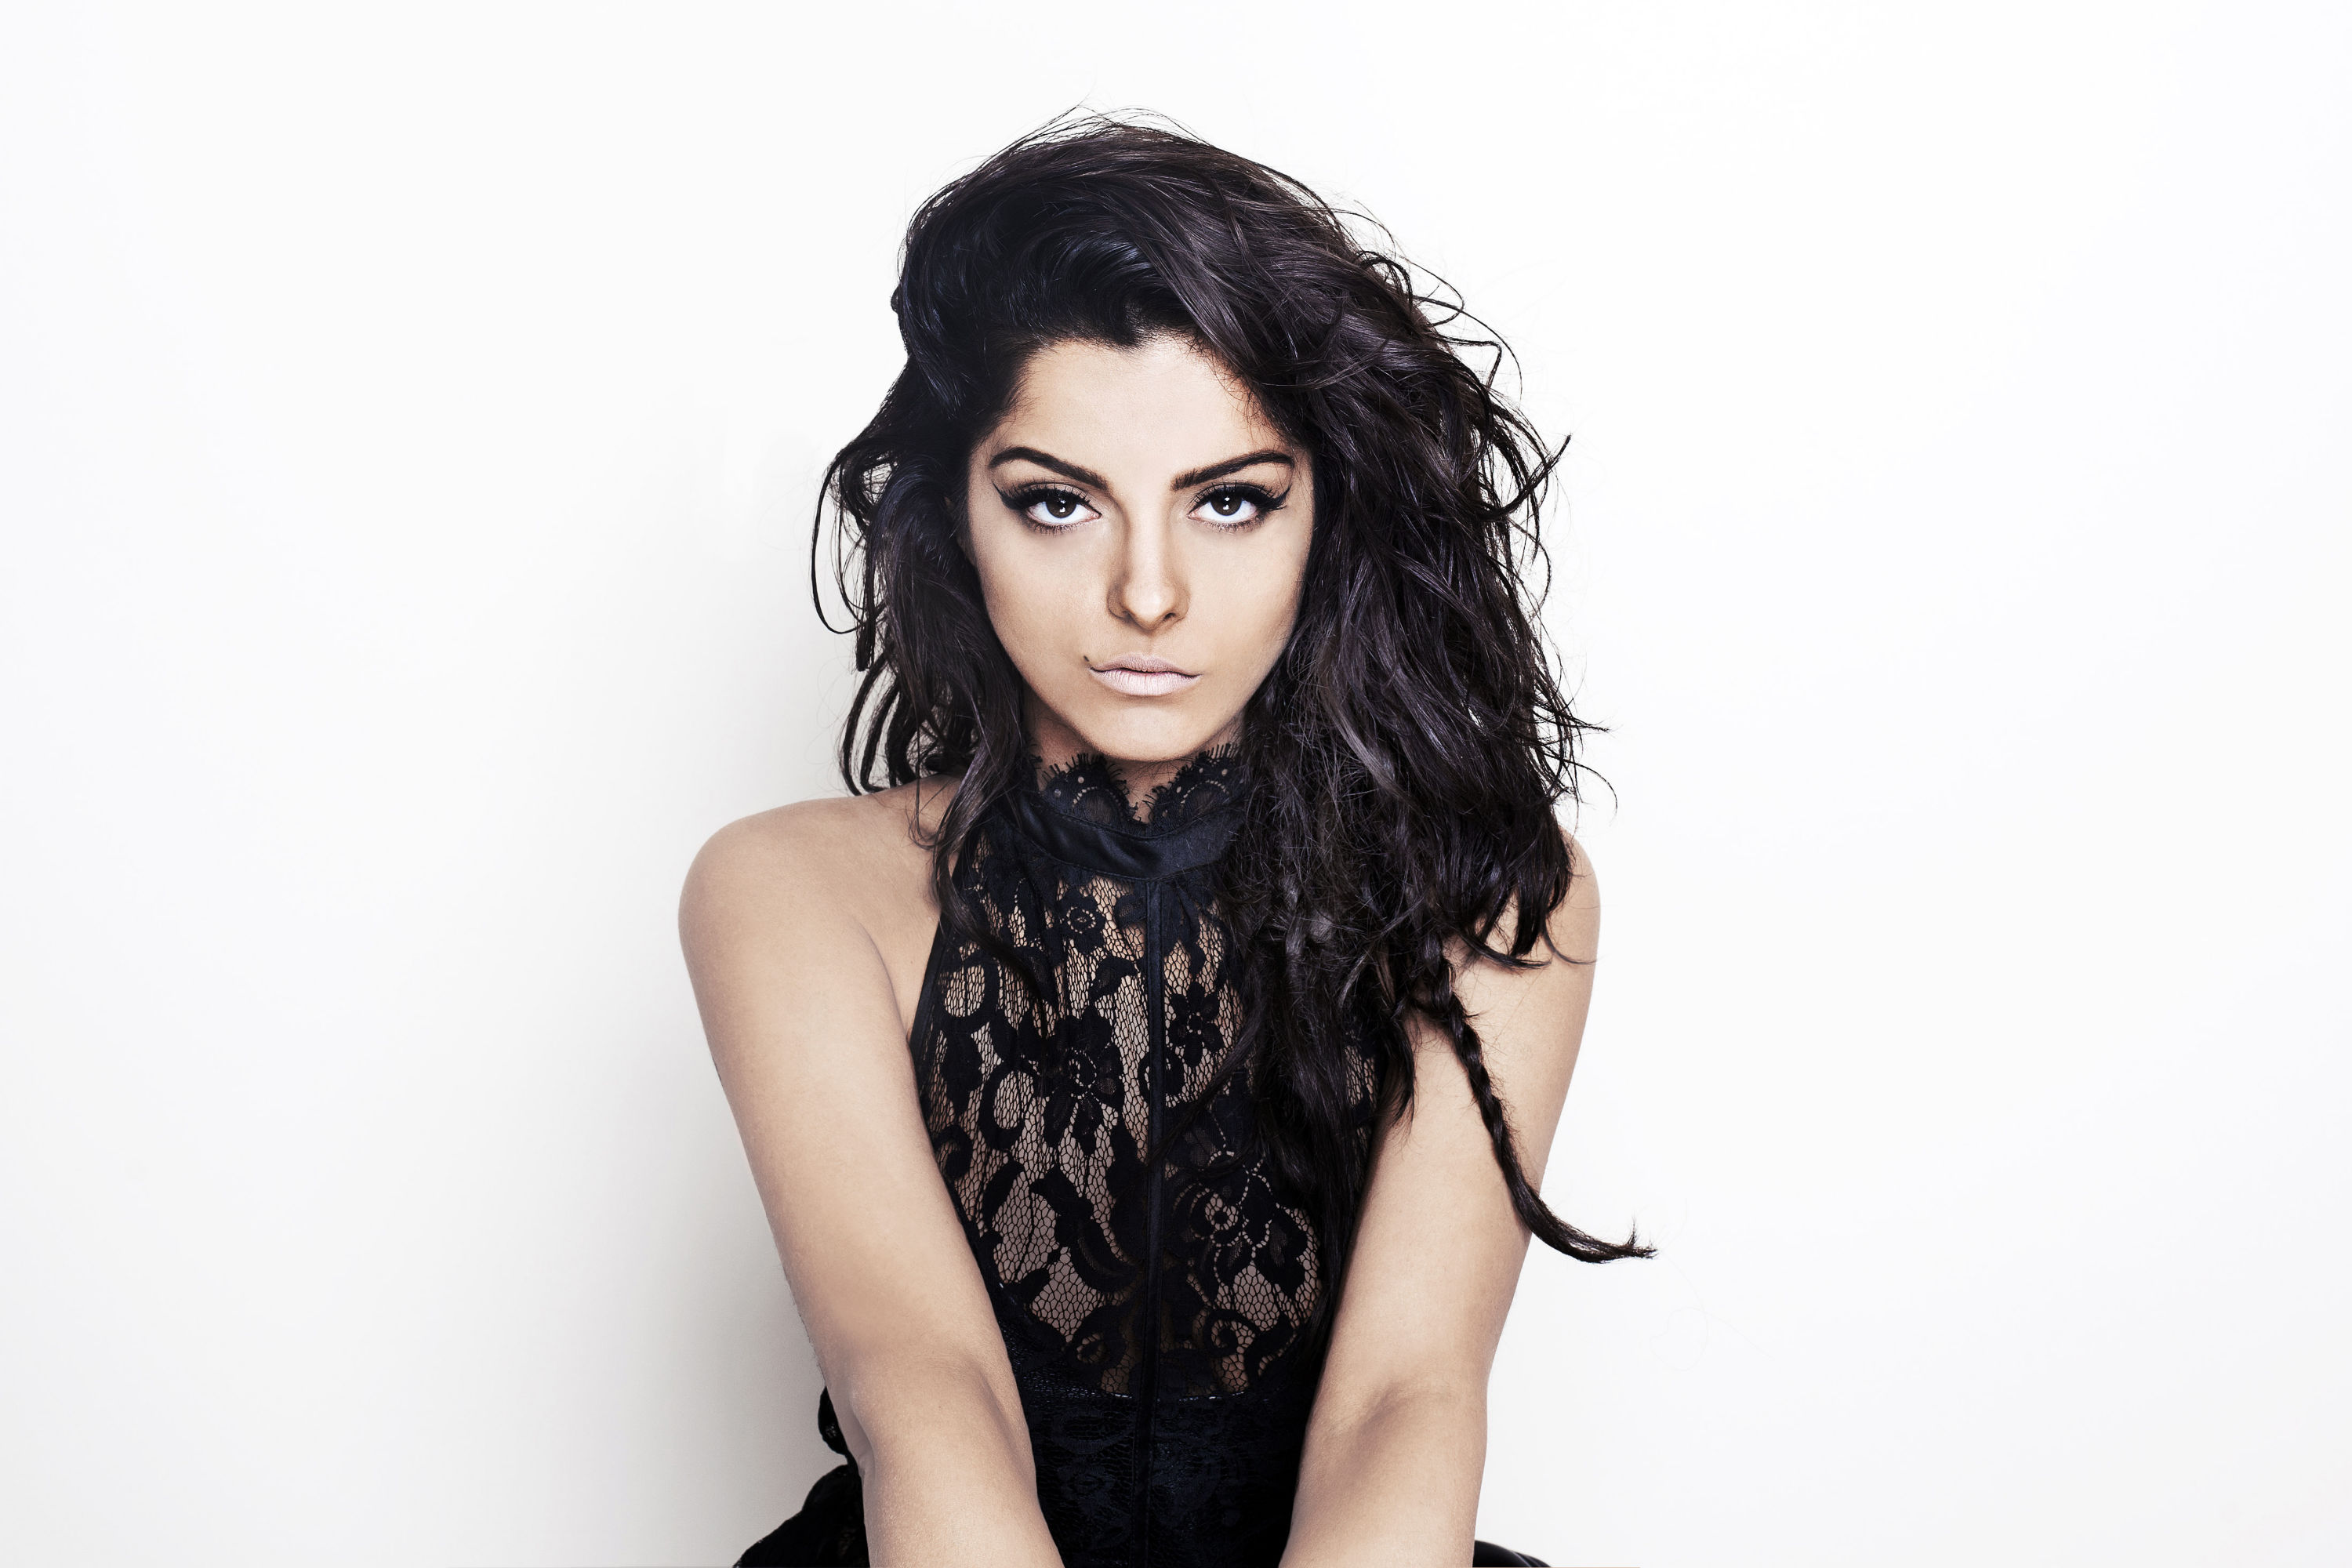 Bebe Rexha Hd Music 4k Wallpapers Images Backgrounds